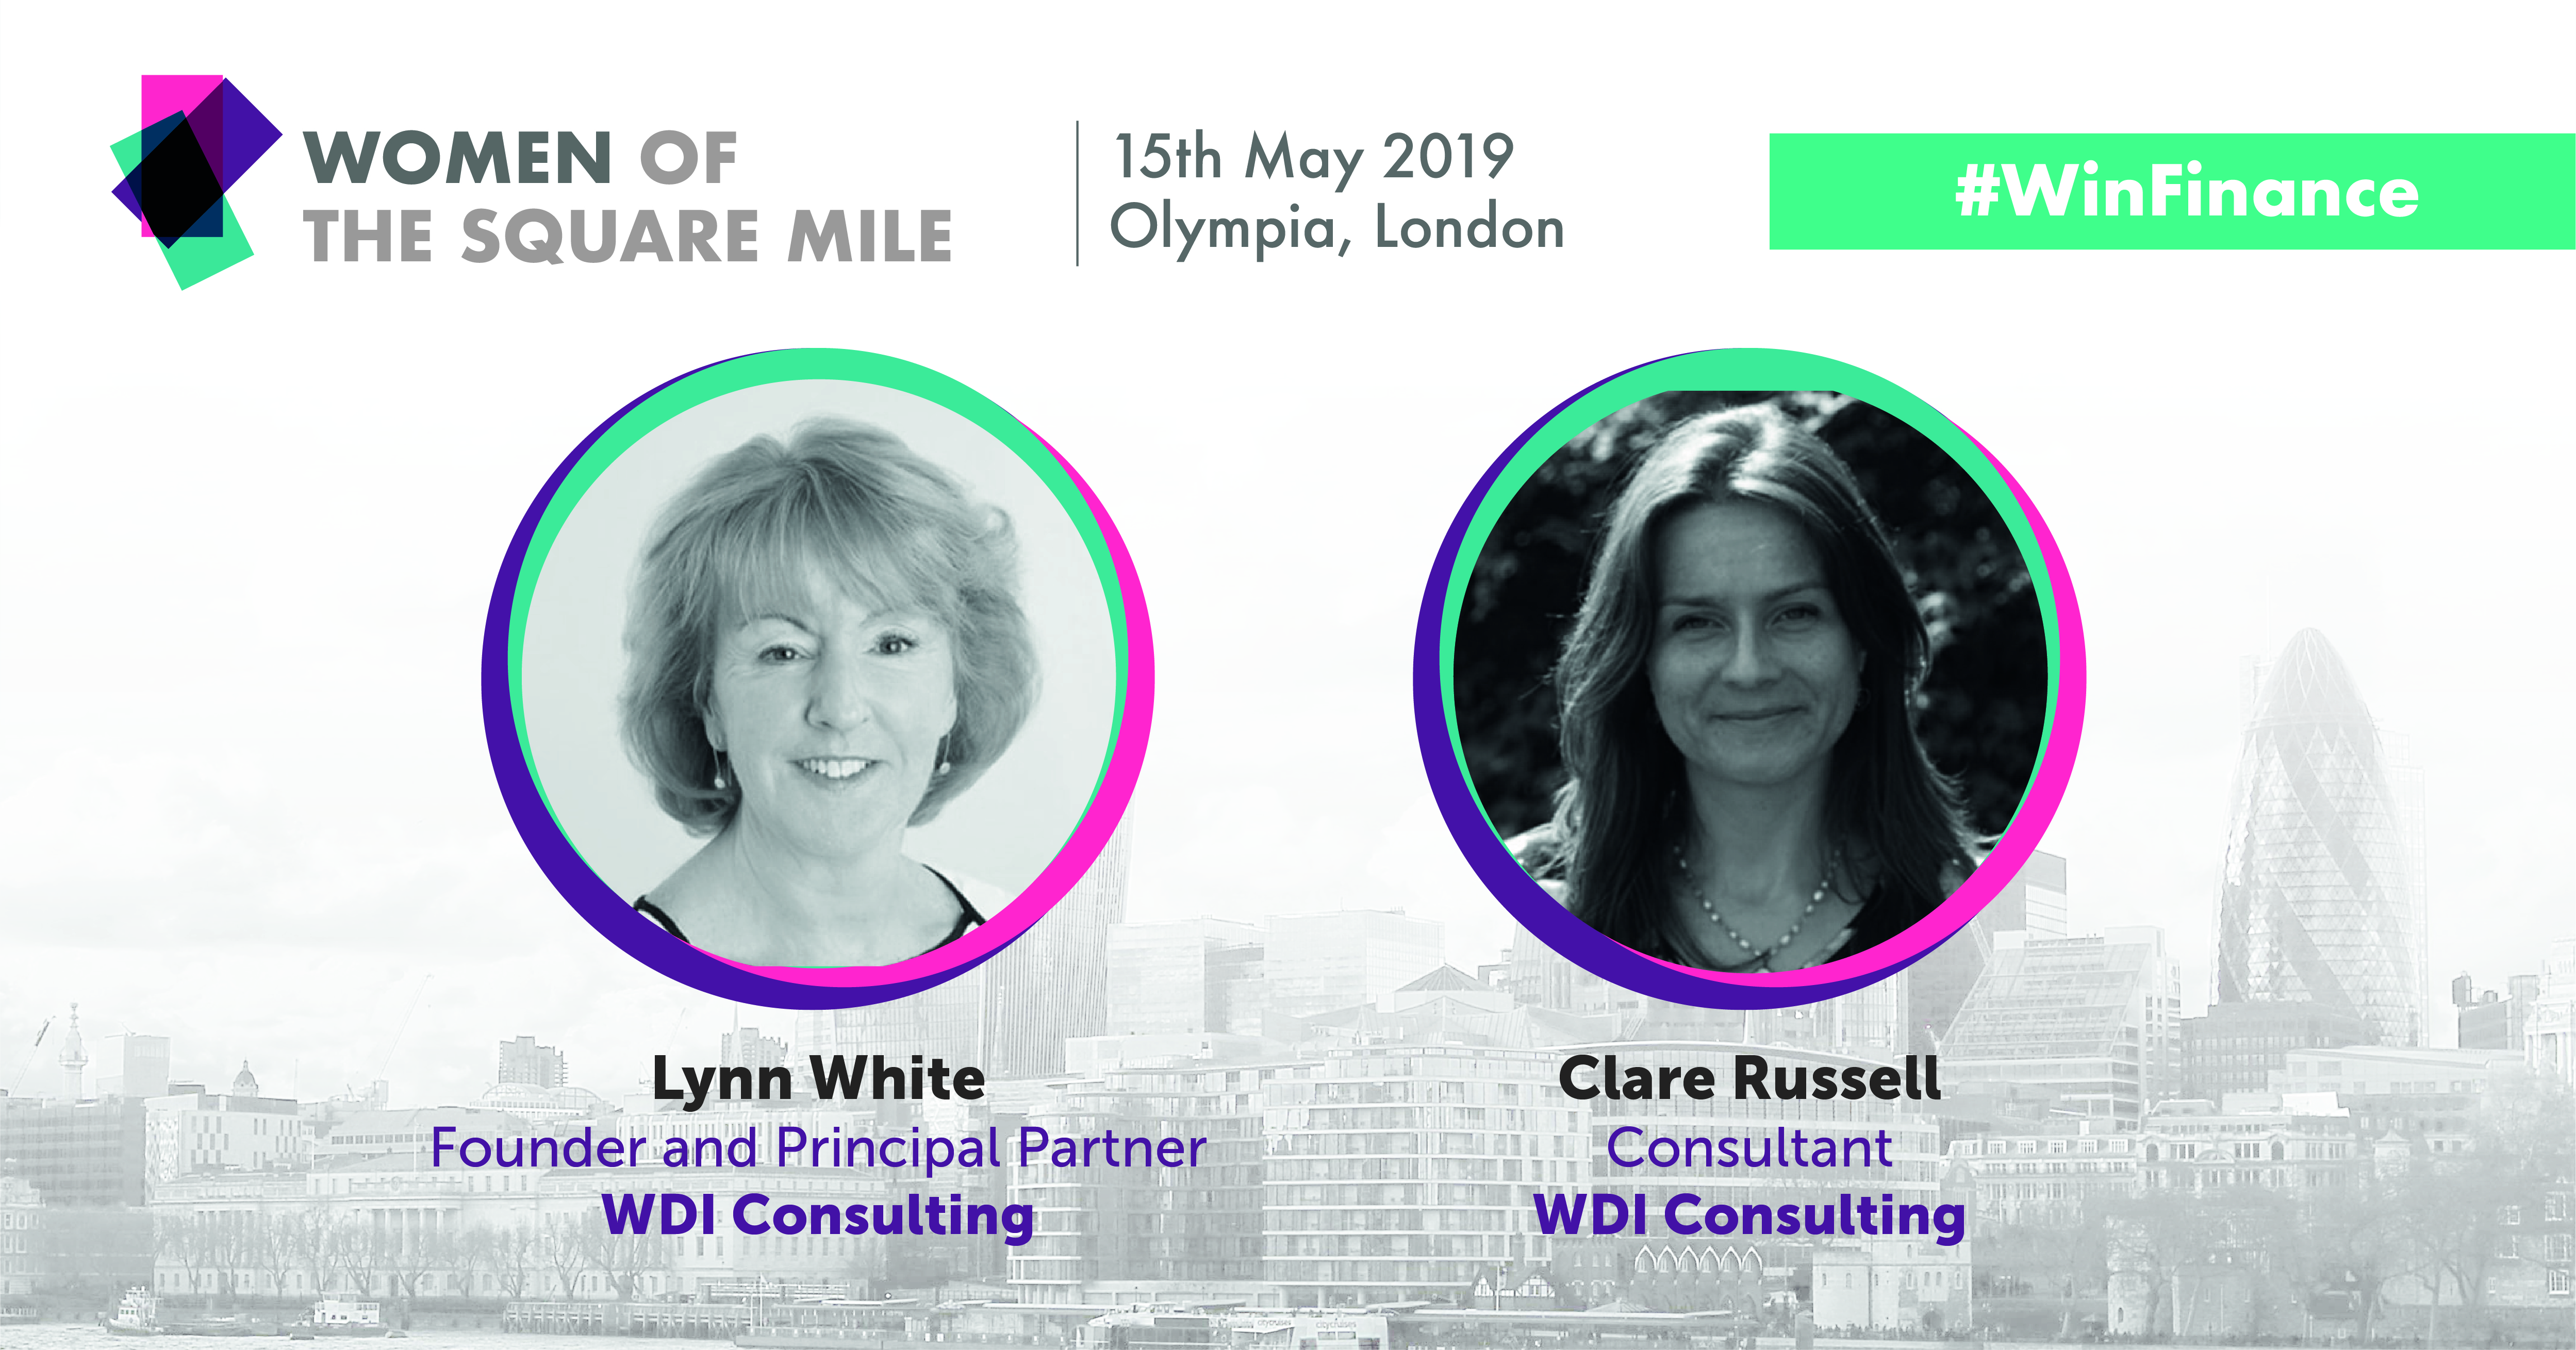 WDI Consulting Women of the Squarre Mile